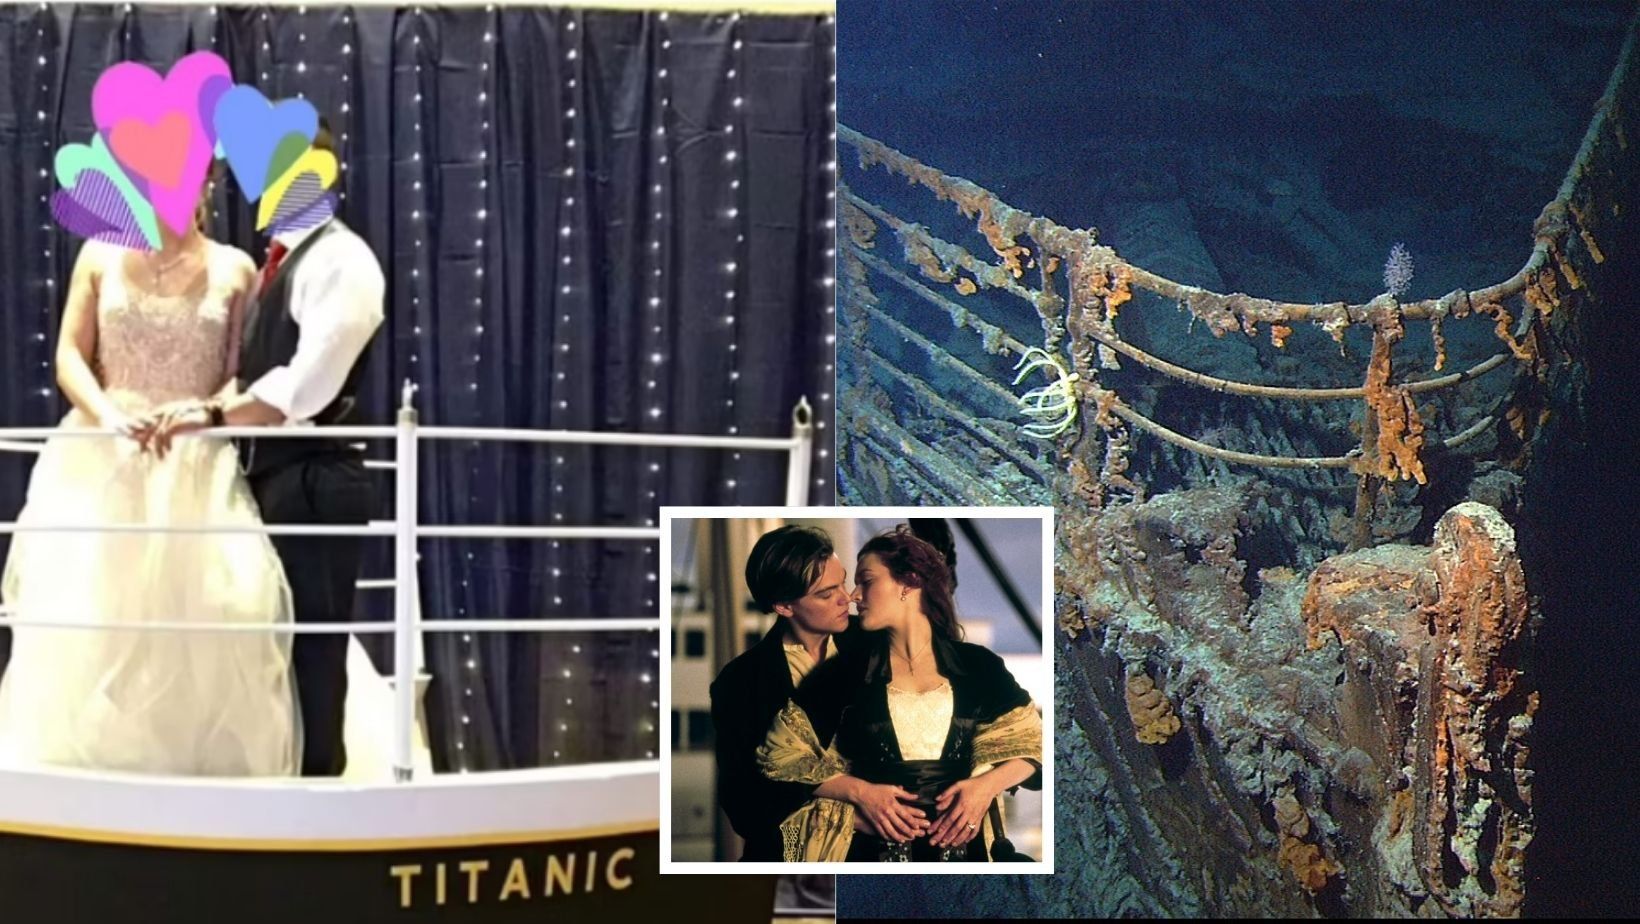 cover 28.jpg?resize=1200,630 - Newlyweds Slammed Online After Having A Titanic-Themed Wedding, With Many Arguing That A Tragedy Shouldn't Be Celebrated